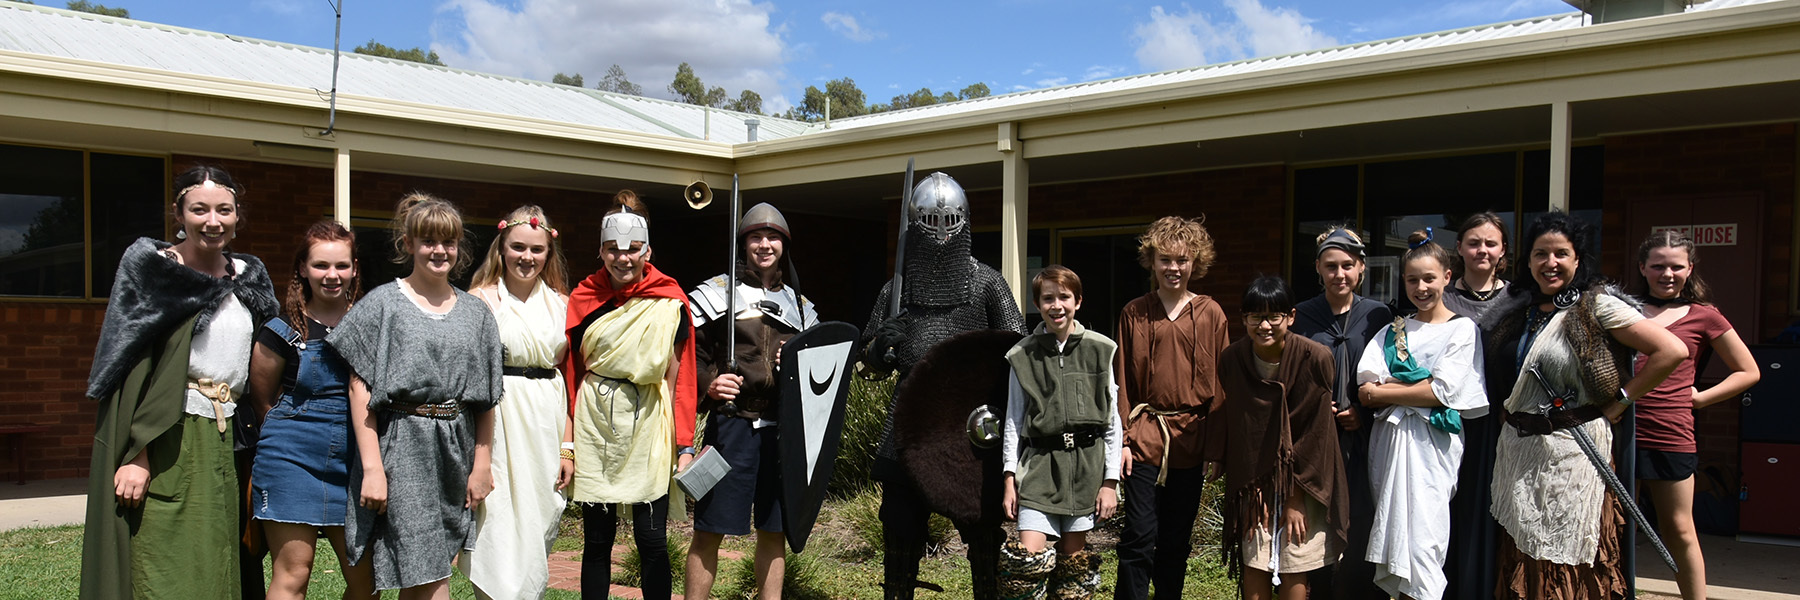 Yr 8 Medieval Day Banner A